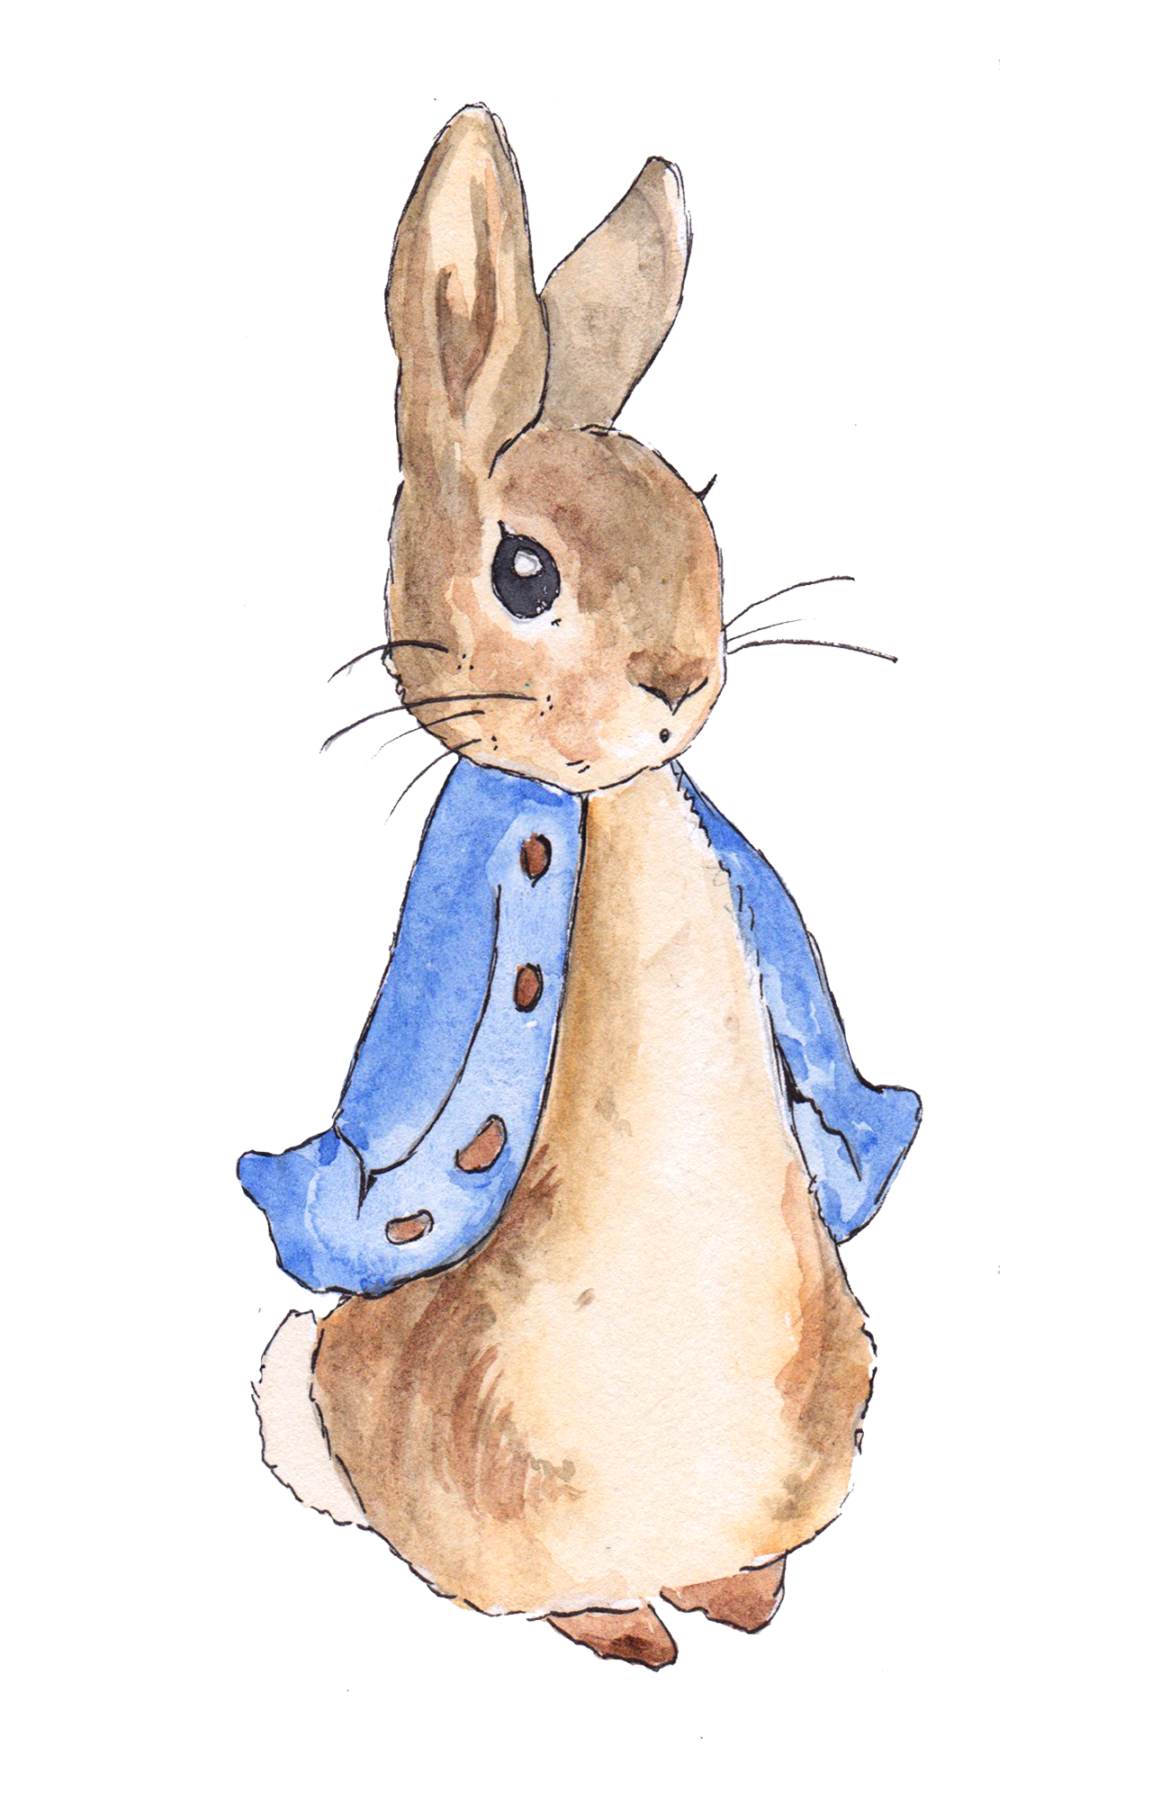 Peter rabbit png. Top themed events in